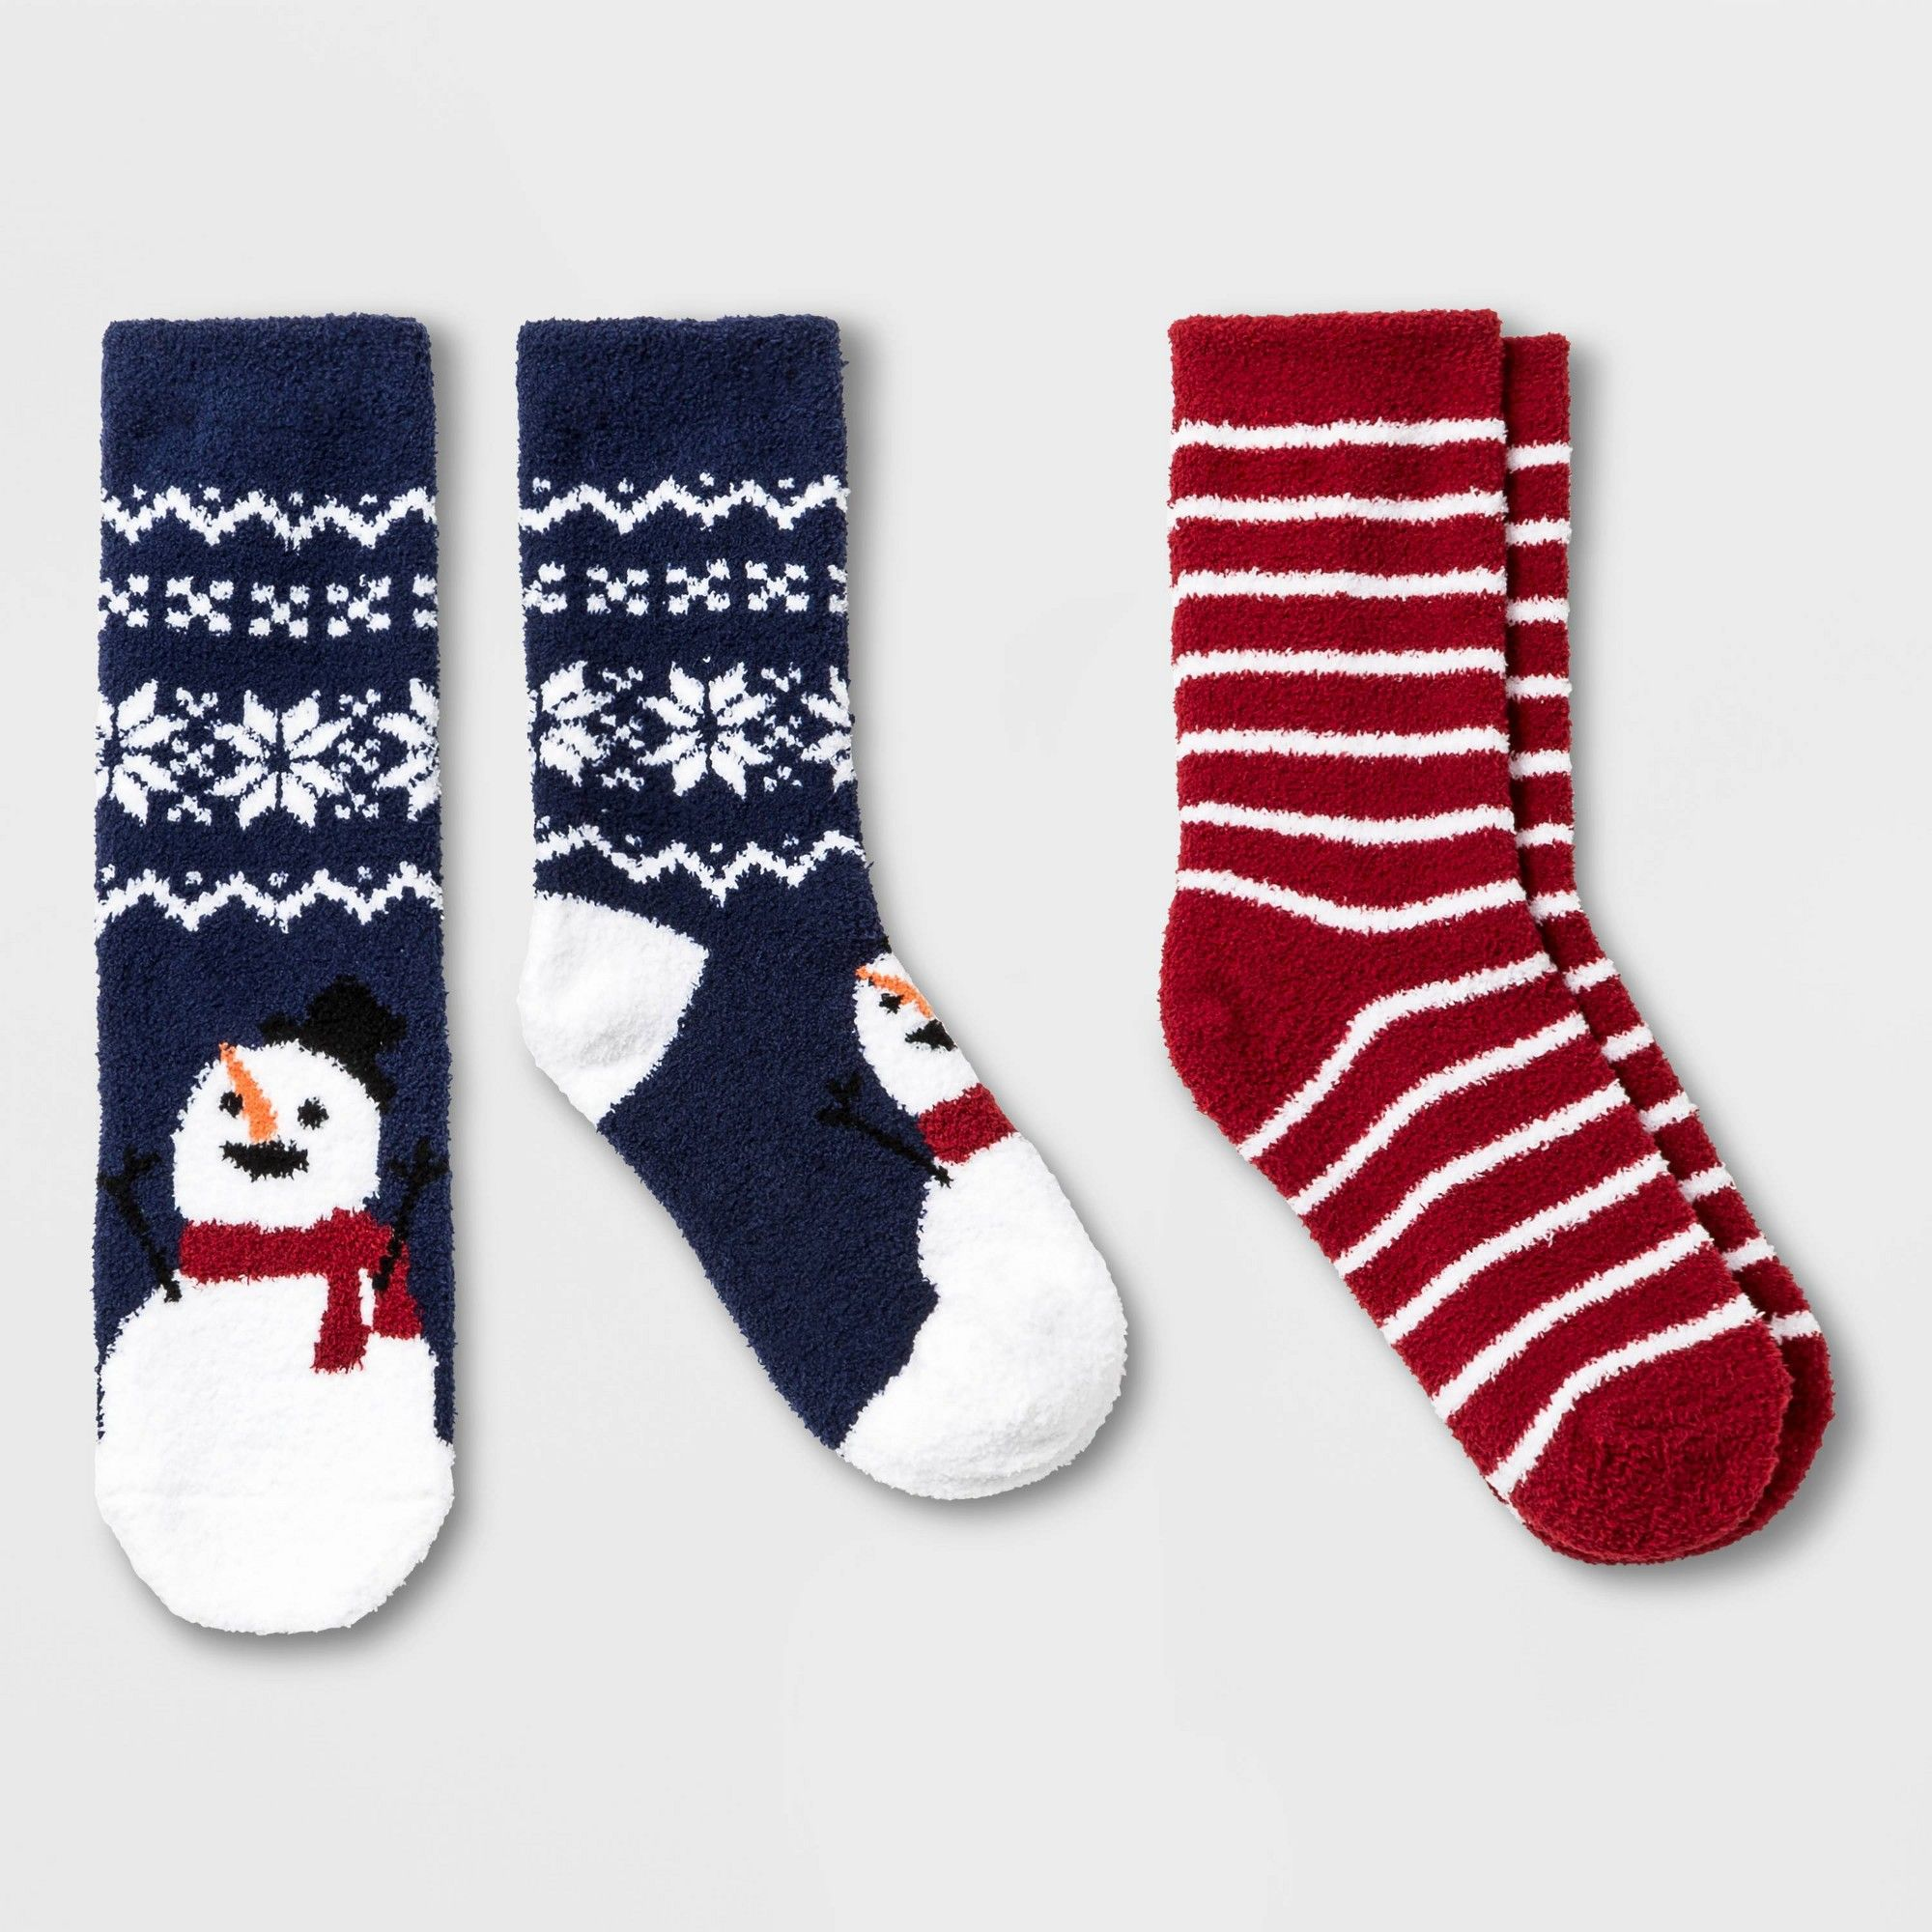 2pk Crew Socks Snowman Polka Dots One Size Woman/'s red//blue Holiday Xmas Target